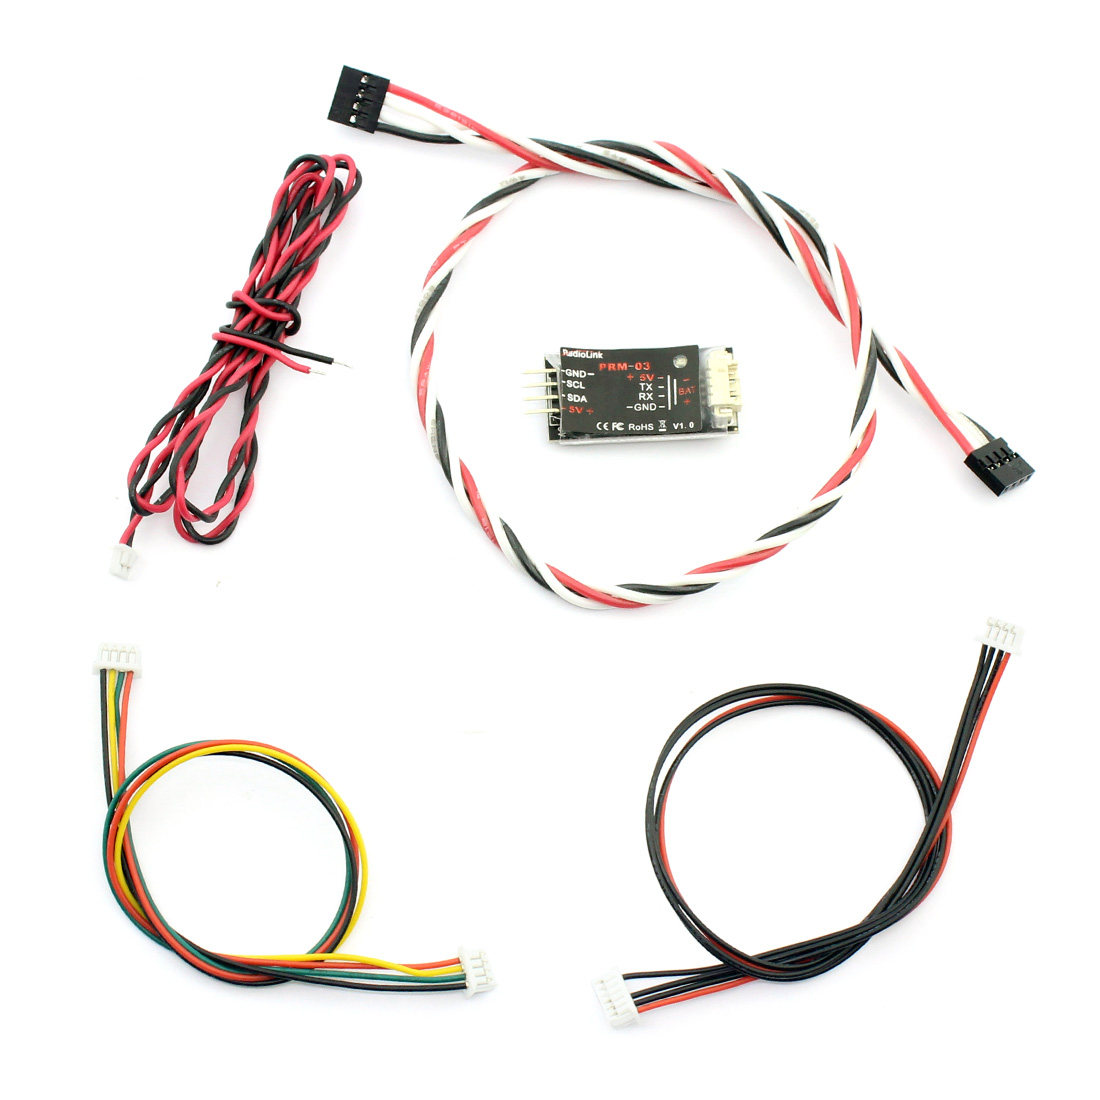 Online Shop Tarot Tl300l2 Mini Osd Image Overlay Gps System For Phantom Camera Wiring Diagram On Schematic Circuit Of A Drone Radiolink Prm 03 Telemetry Module At9s At10 Rc Suit Pix Apm R9d